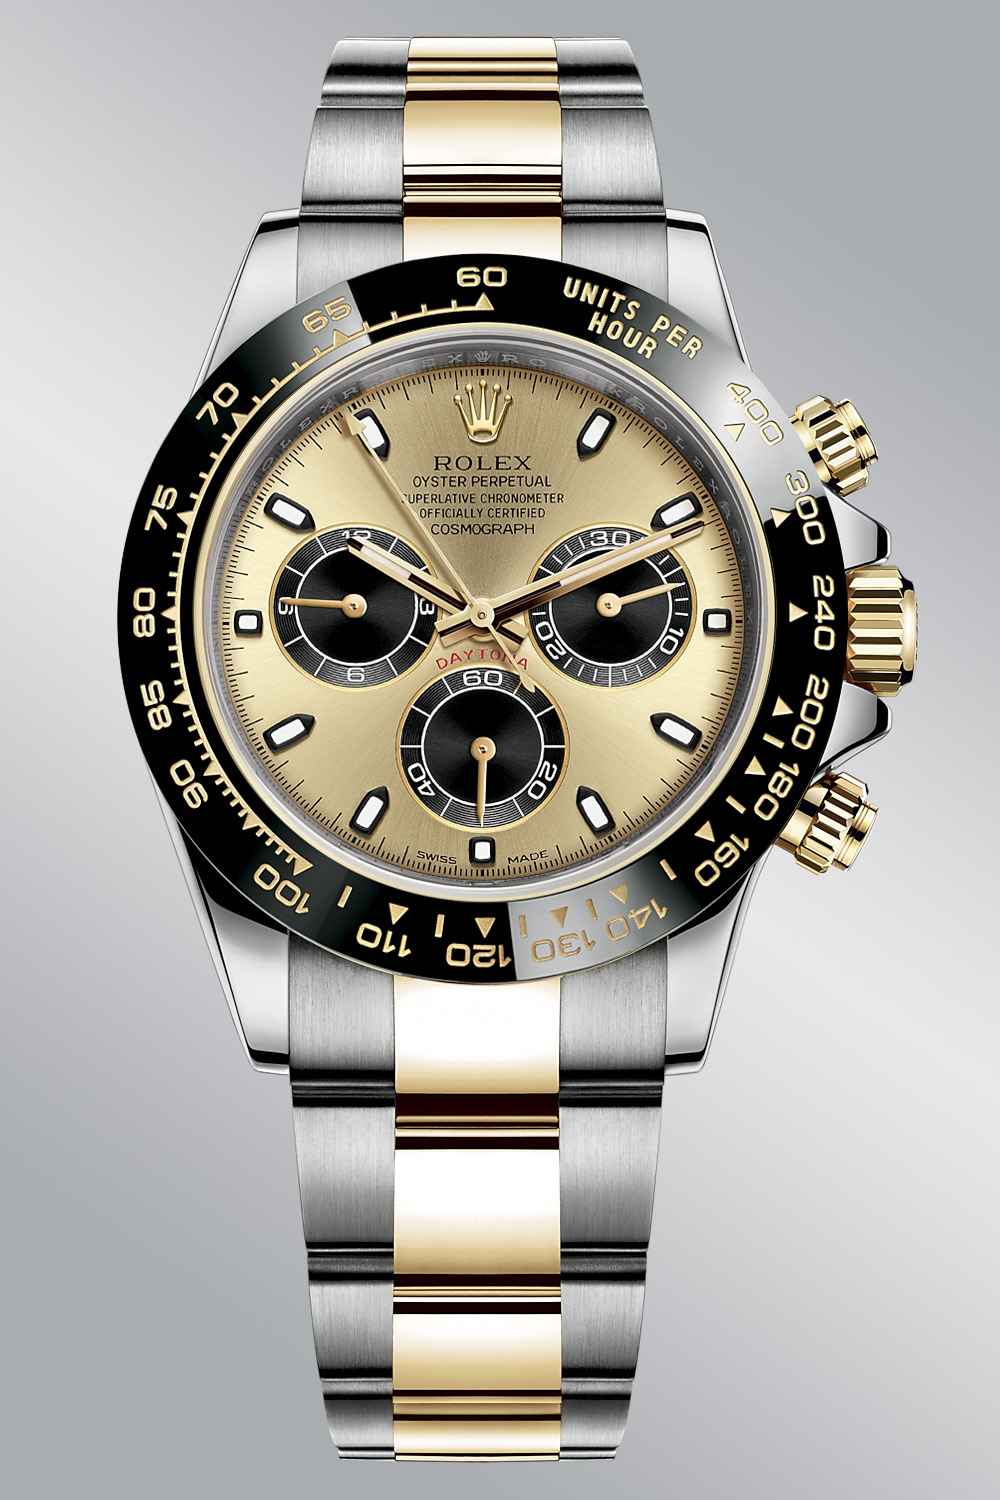 Rolex Predictions 2021 - Rolex New models 2021 - Rolex Daytona Rolesor Yellow Ceramic 116513LN